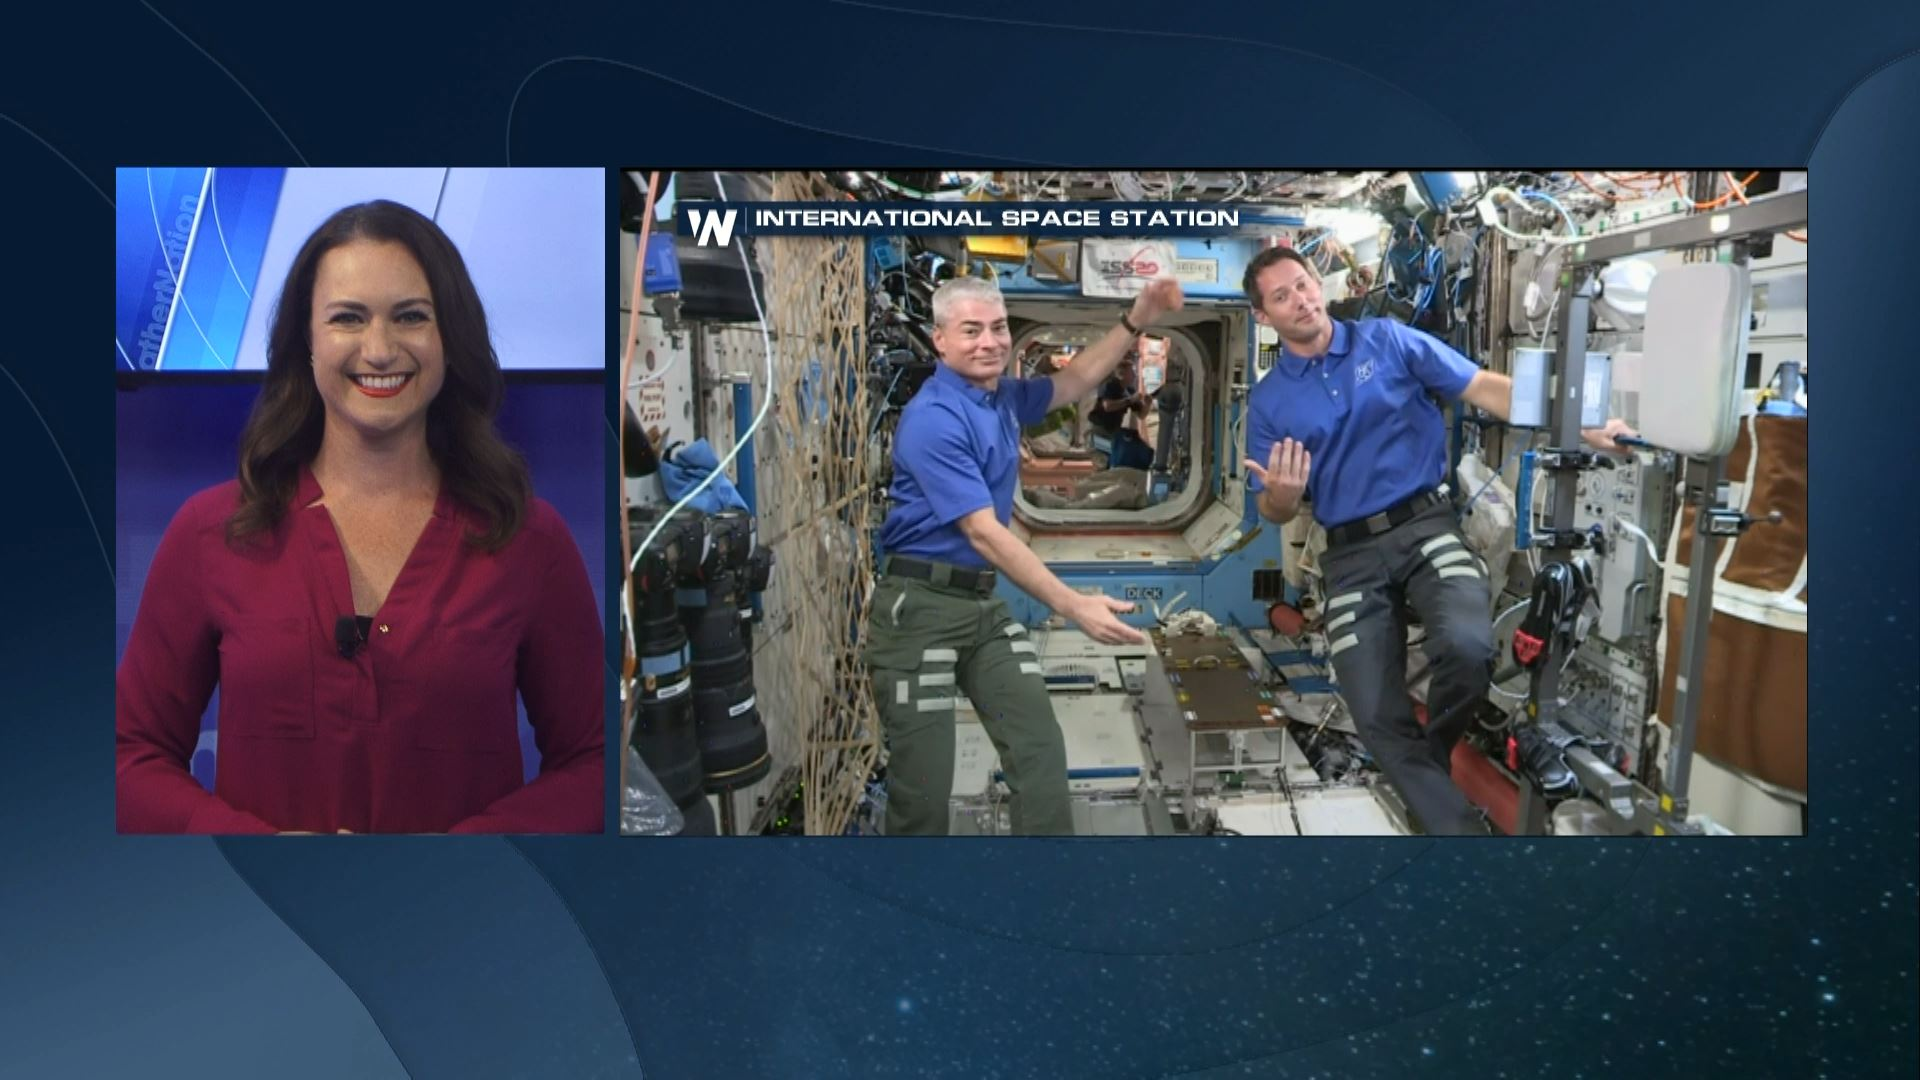 Interview with Astronauts on the International Space Station